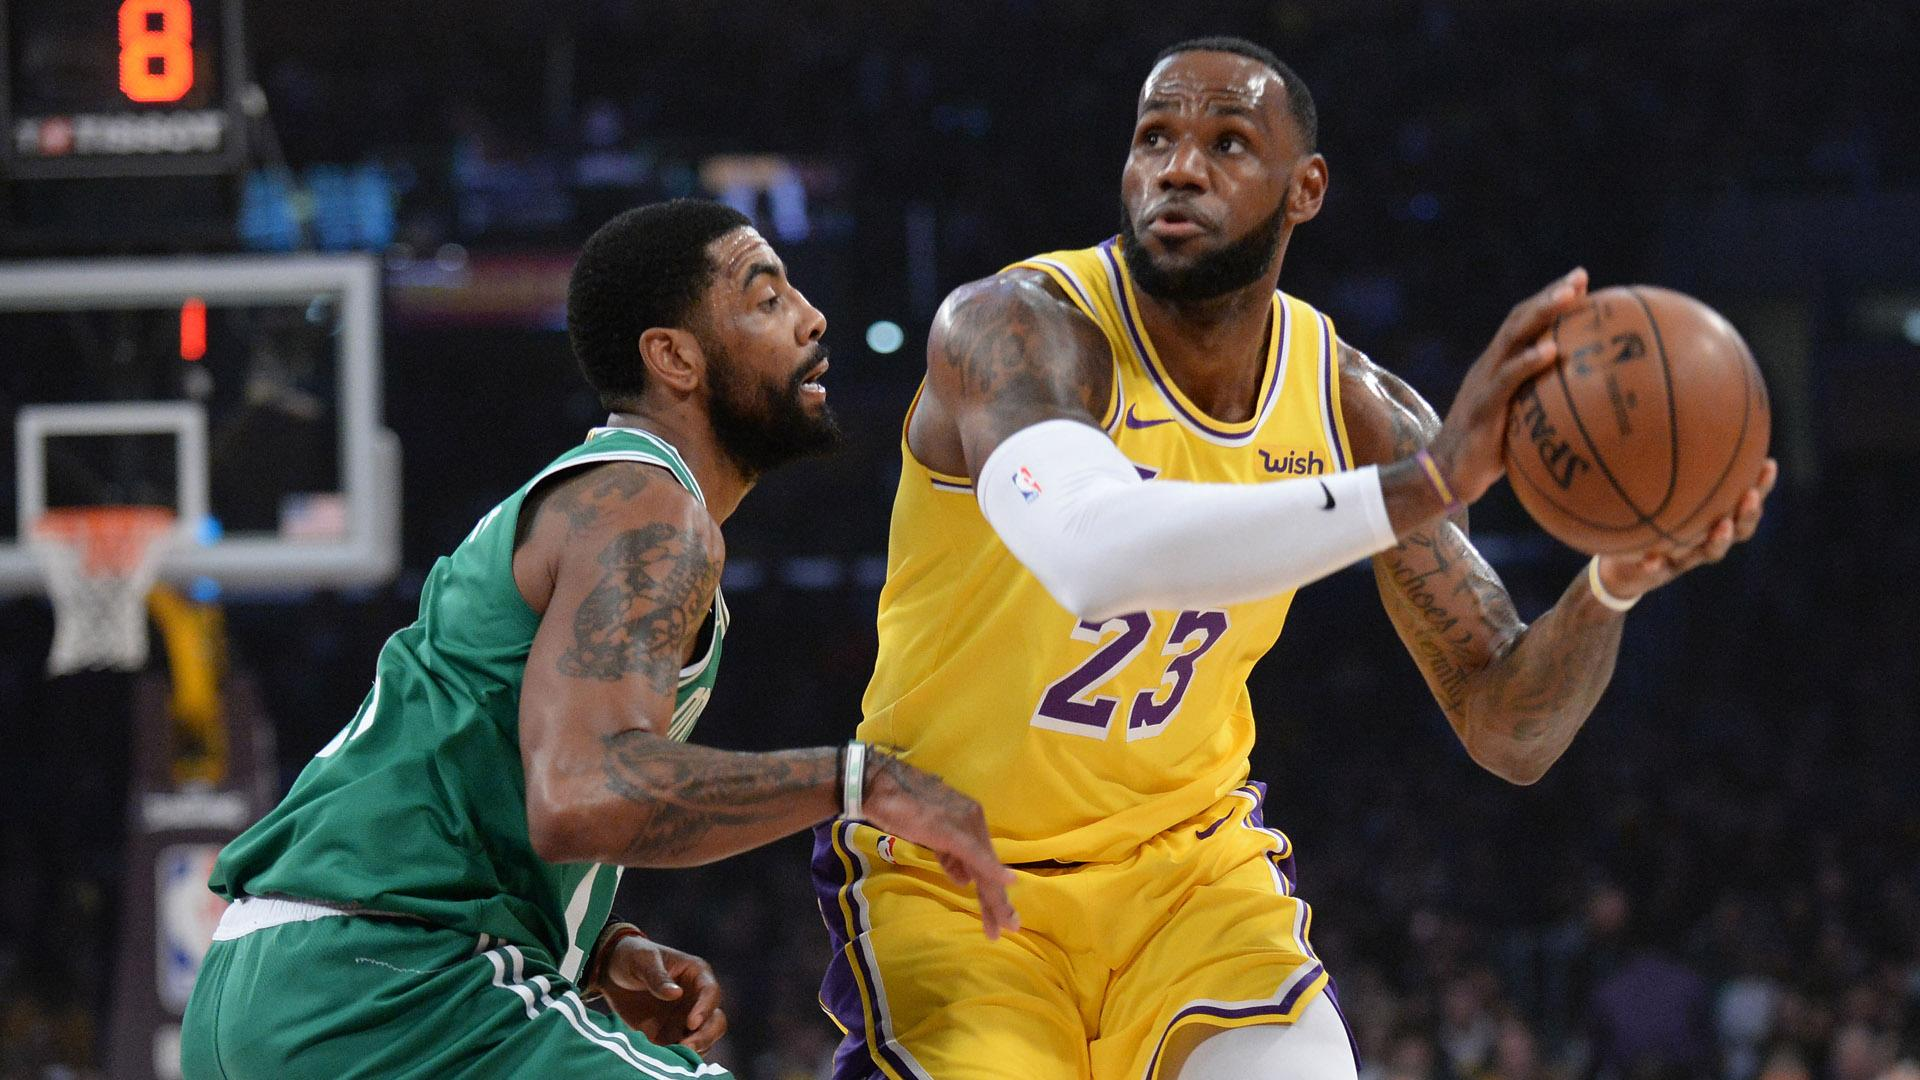 ee00fb7512f NBA rumors  Kyrie Irving has discussed joining LeBron James